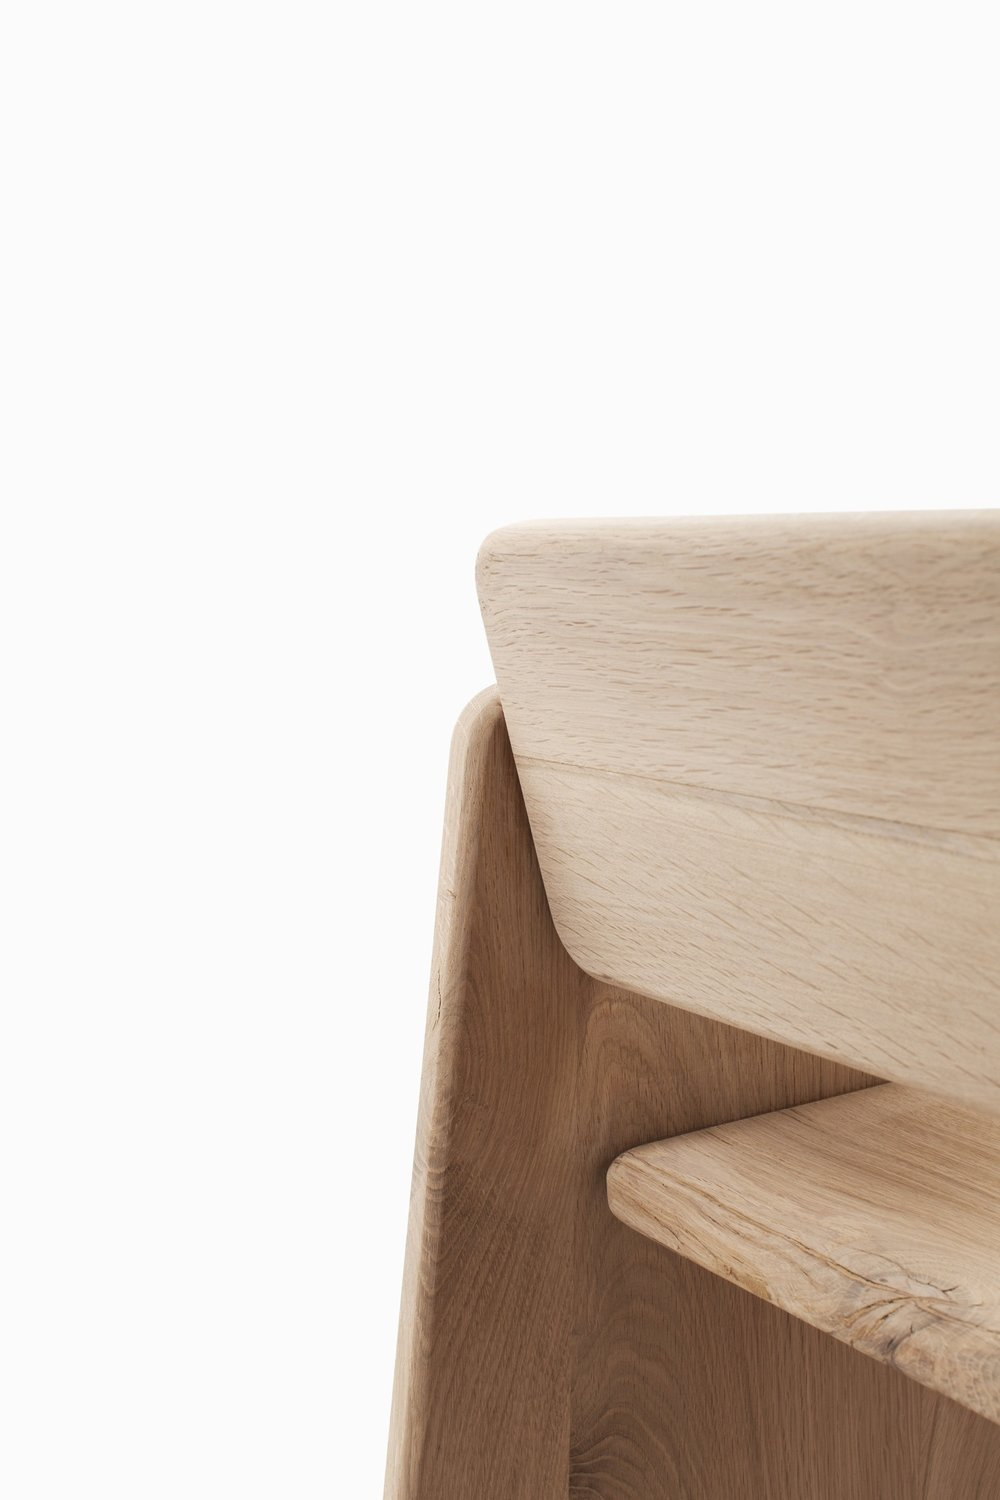 Board Seats designed by Julien Renault